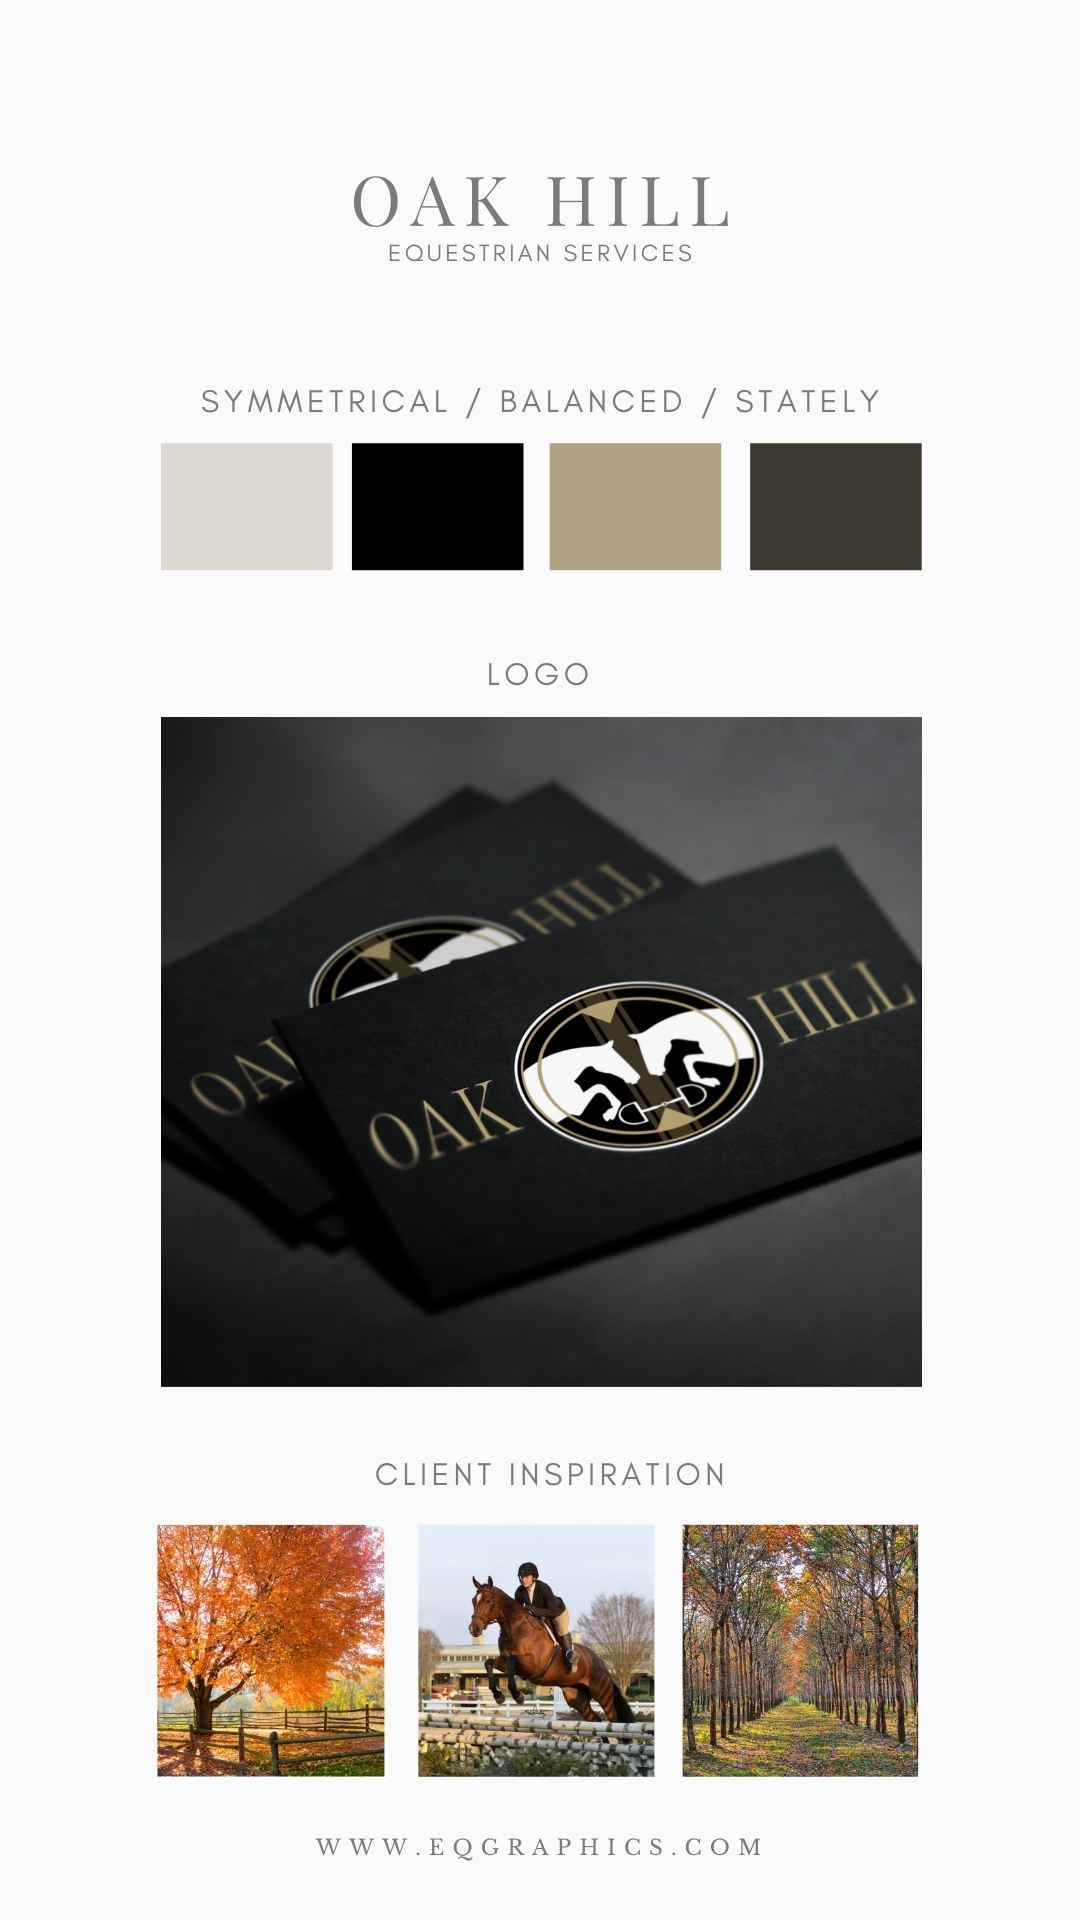 Striking Hunter/Jumper Logo Design Inspired by Traditional Foxhunting Imagery